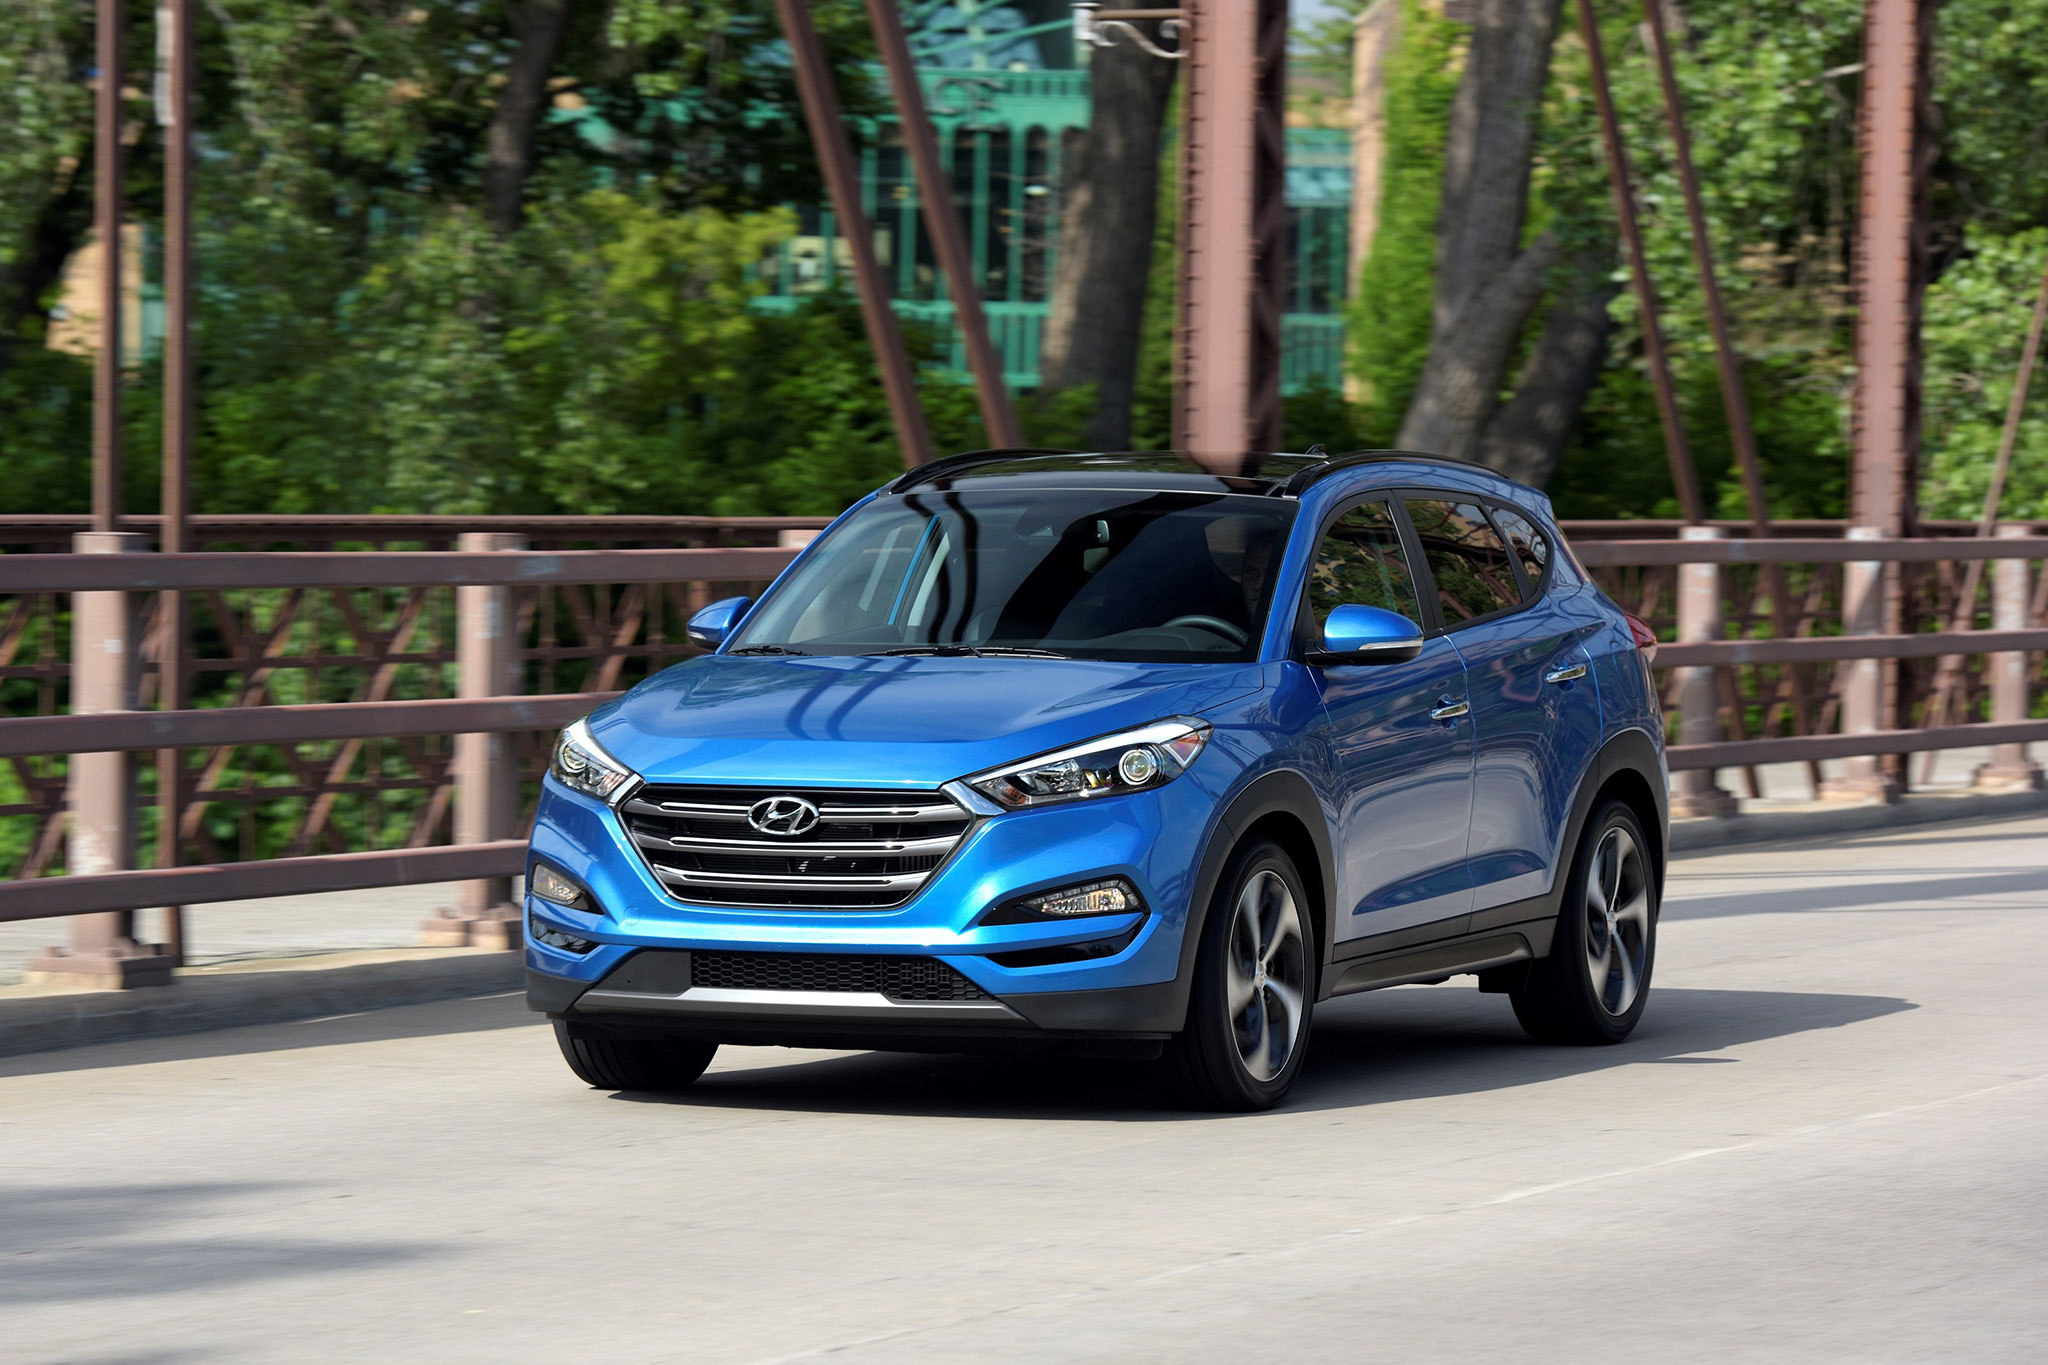 2017 Hyundai Tucson Front Three Quarter In Motion 03